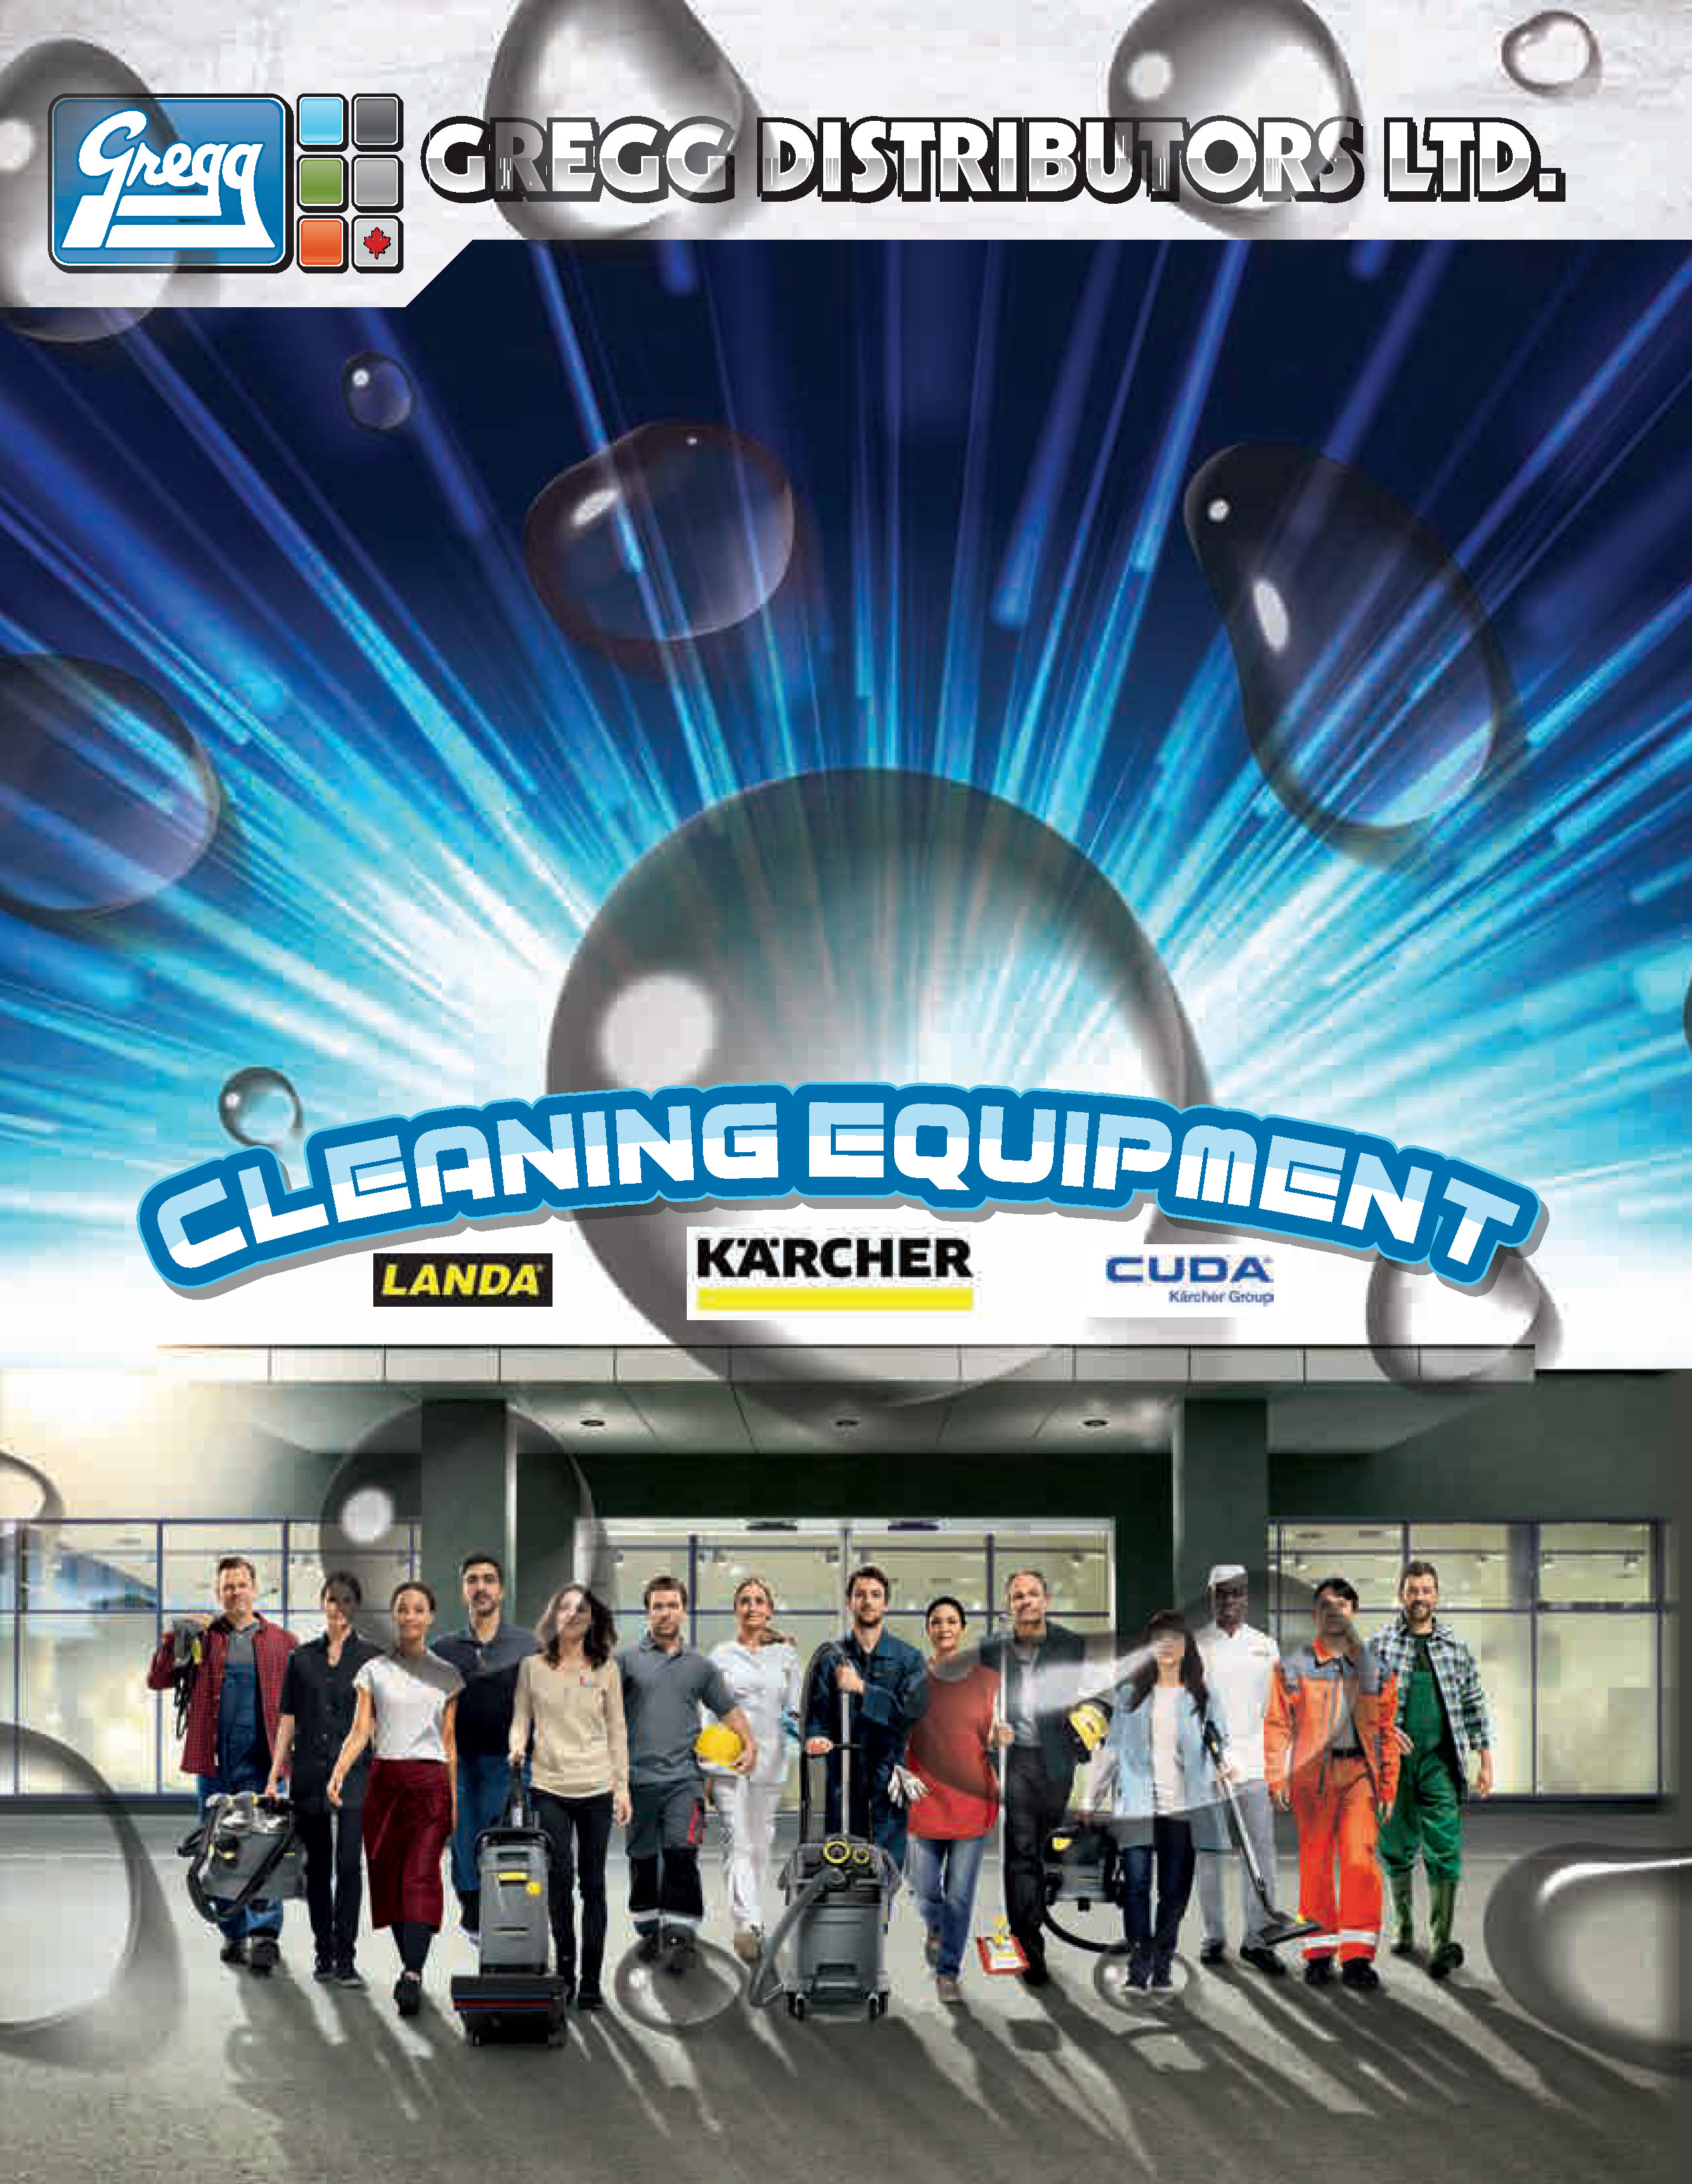 Gregg's Karcher Cleaning Equipment Catalogue Catalogue Cover